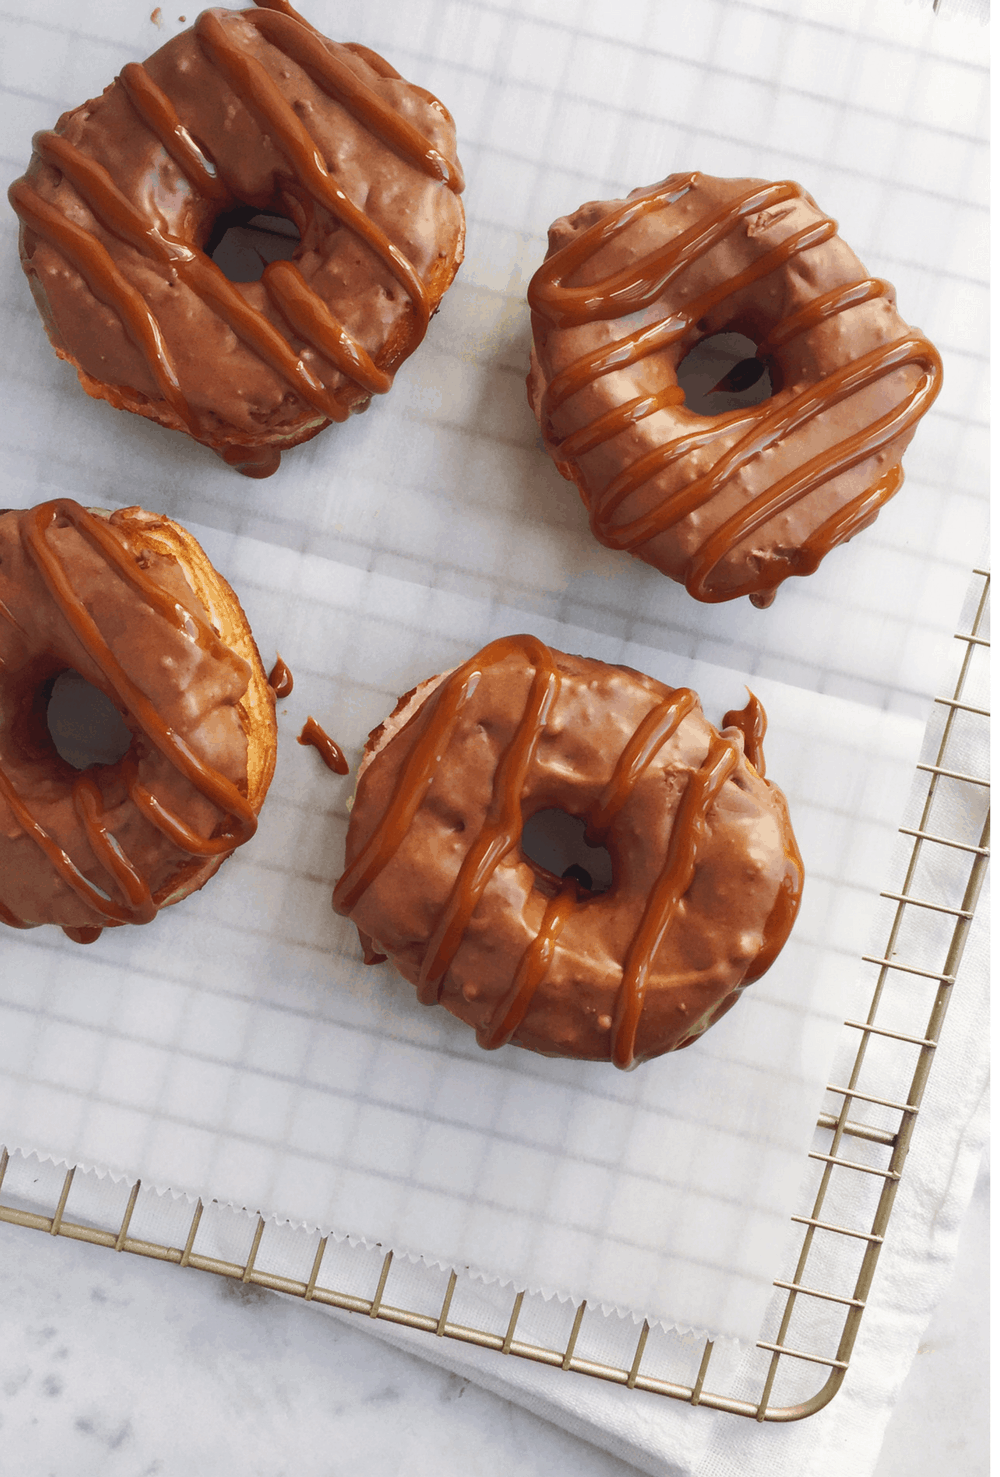 How to make Mexican chocolate-glazed doughnuts with biscuit dough, recipe via theothersideofthetortilla.com